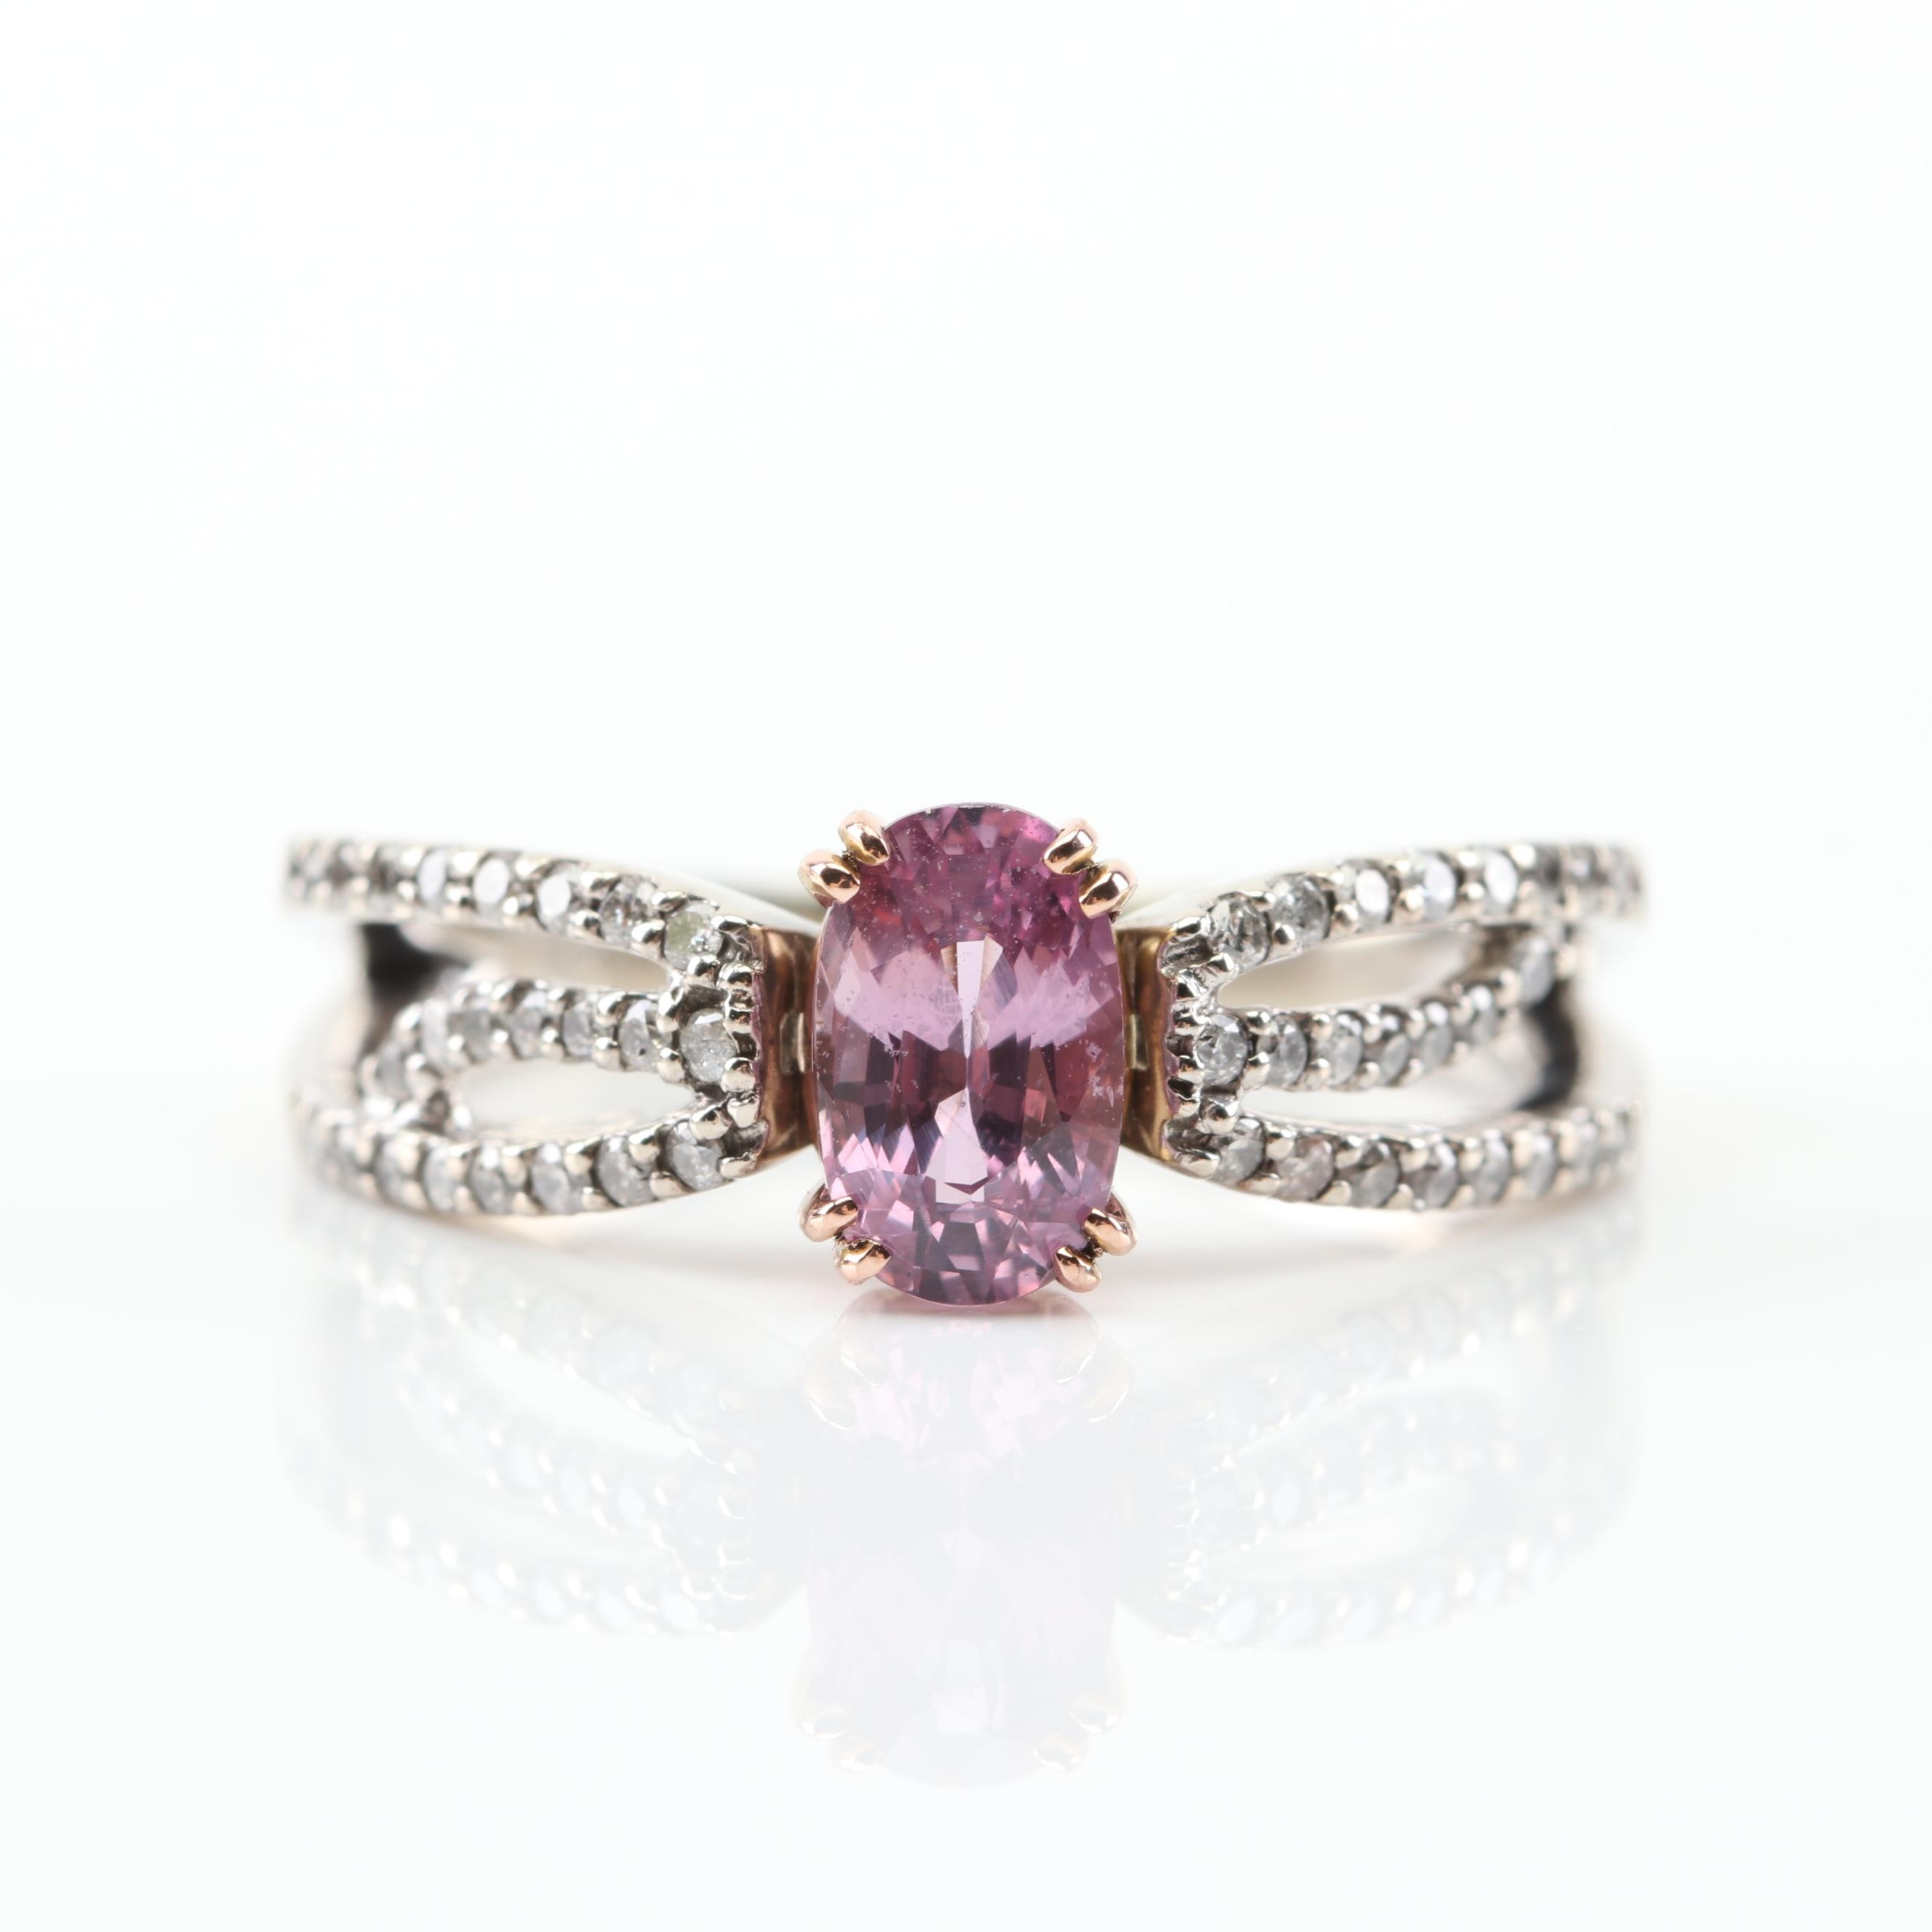 14K White Gold Pink Sapphire and Diamond Ring with 14K Yellow Gold Prongs